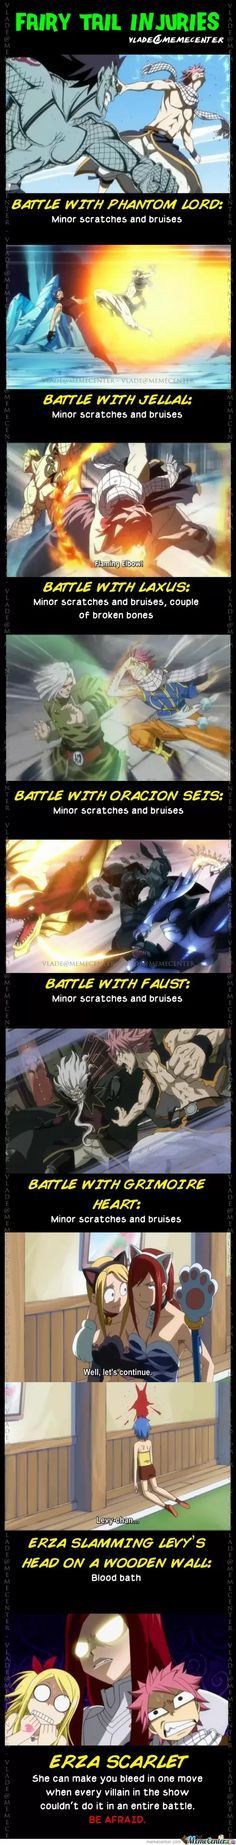 Zeref. A scratch. Ended with a punch that didn't even turn him into E.N.D ... Yeah I'm still salty about that